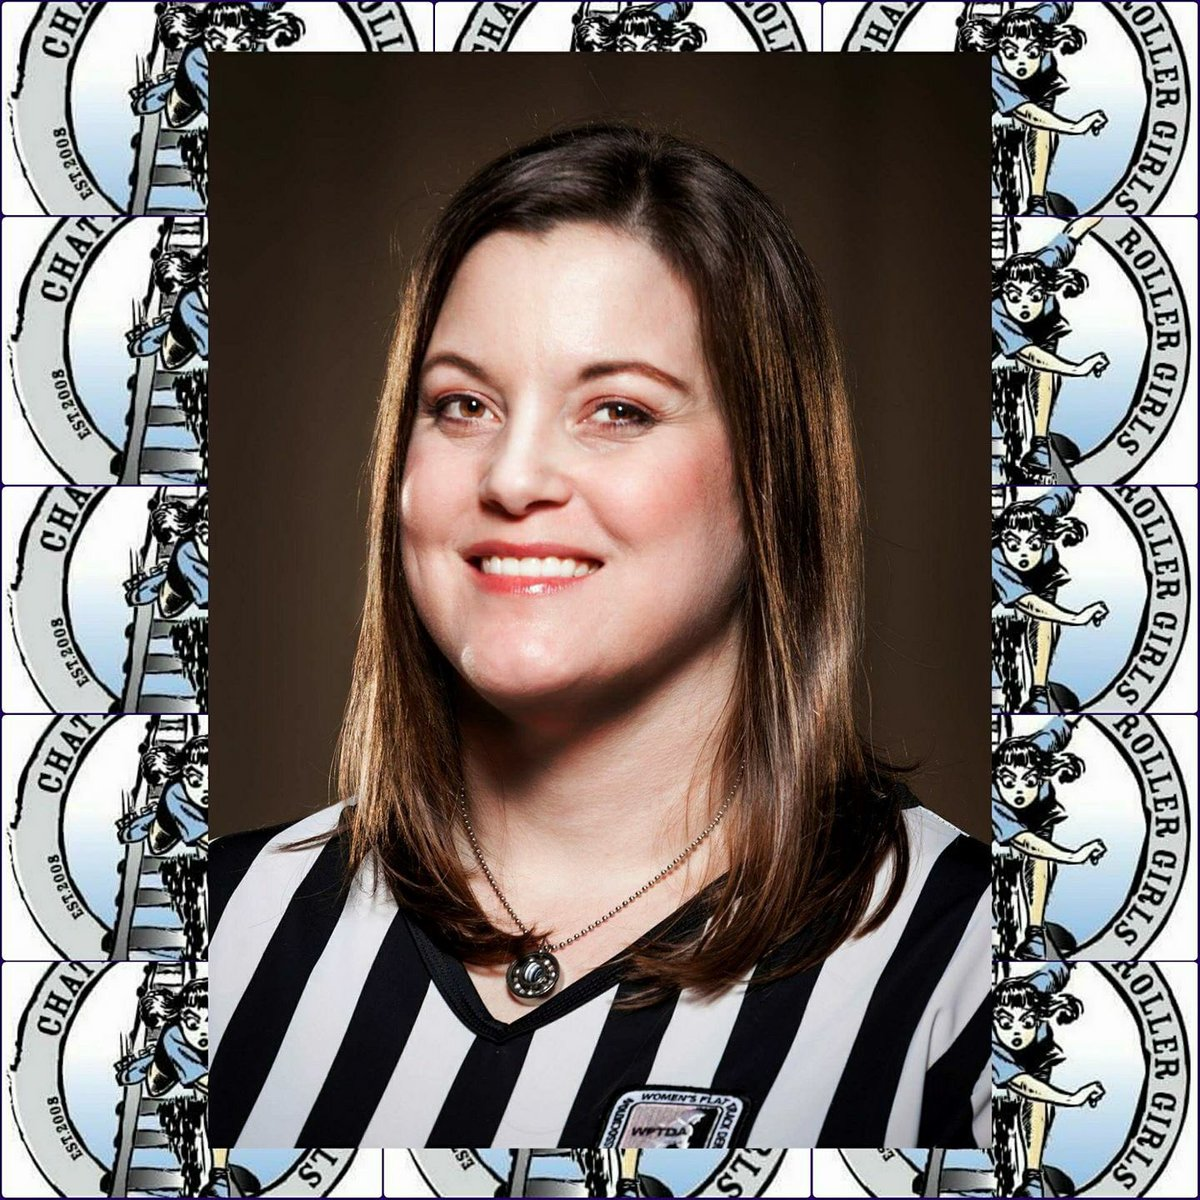 #refs #highly #trained #precise and on #time with their #calls #Sadly #rollergirls are not #Happybelatedbirthday #dear #HeadRef #KaraVorkian https://t.co/6vQgCfMgvJ